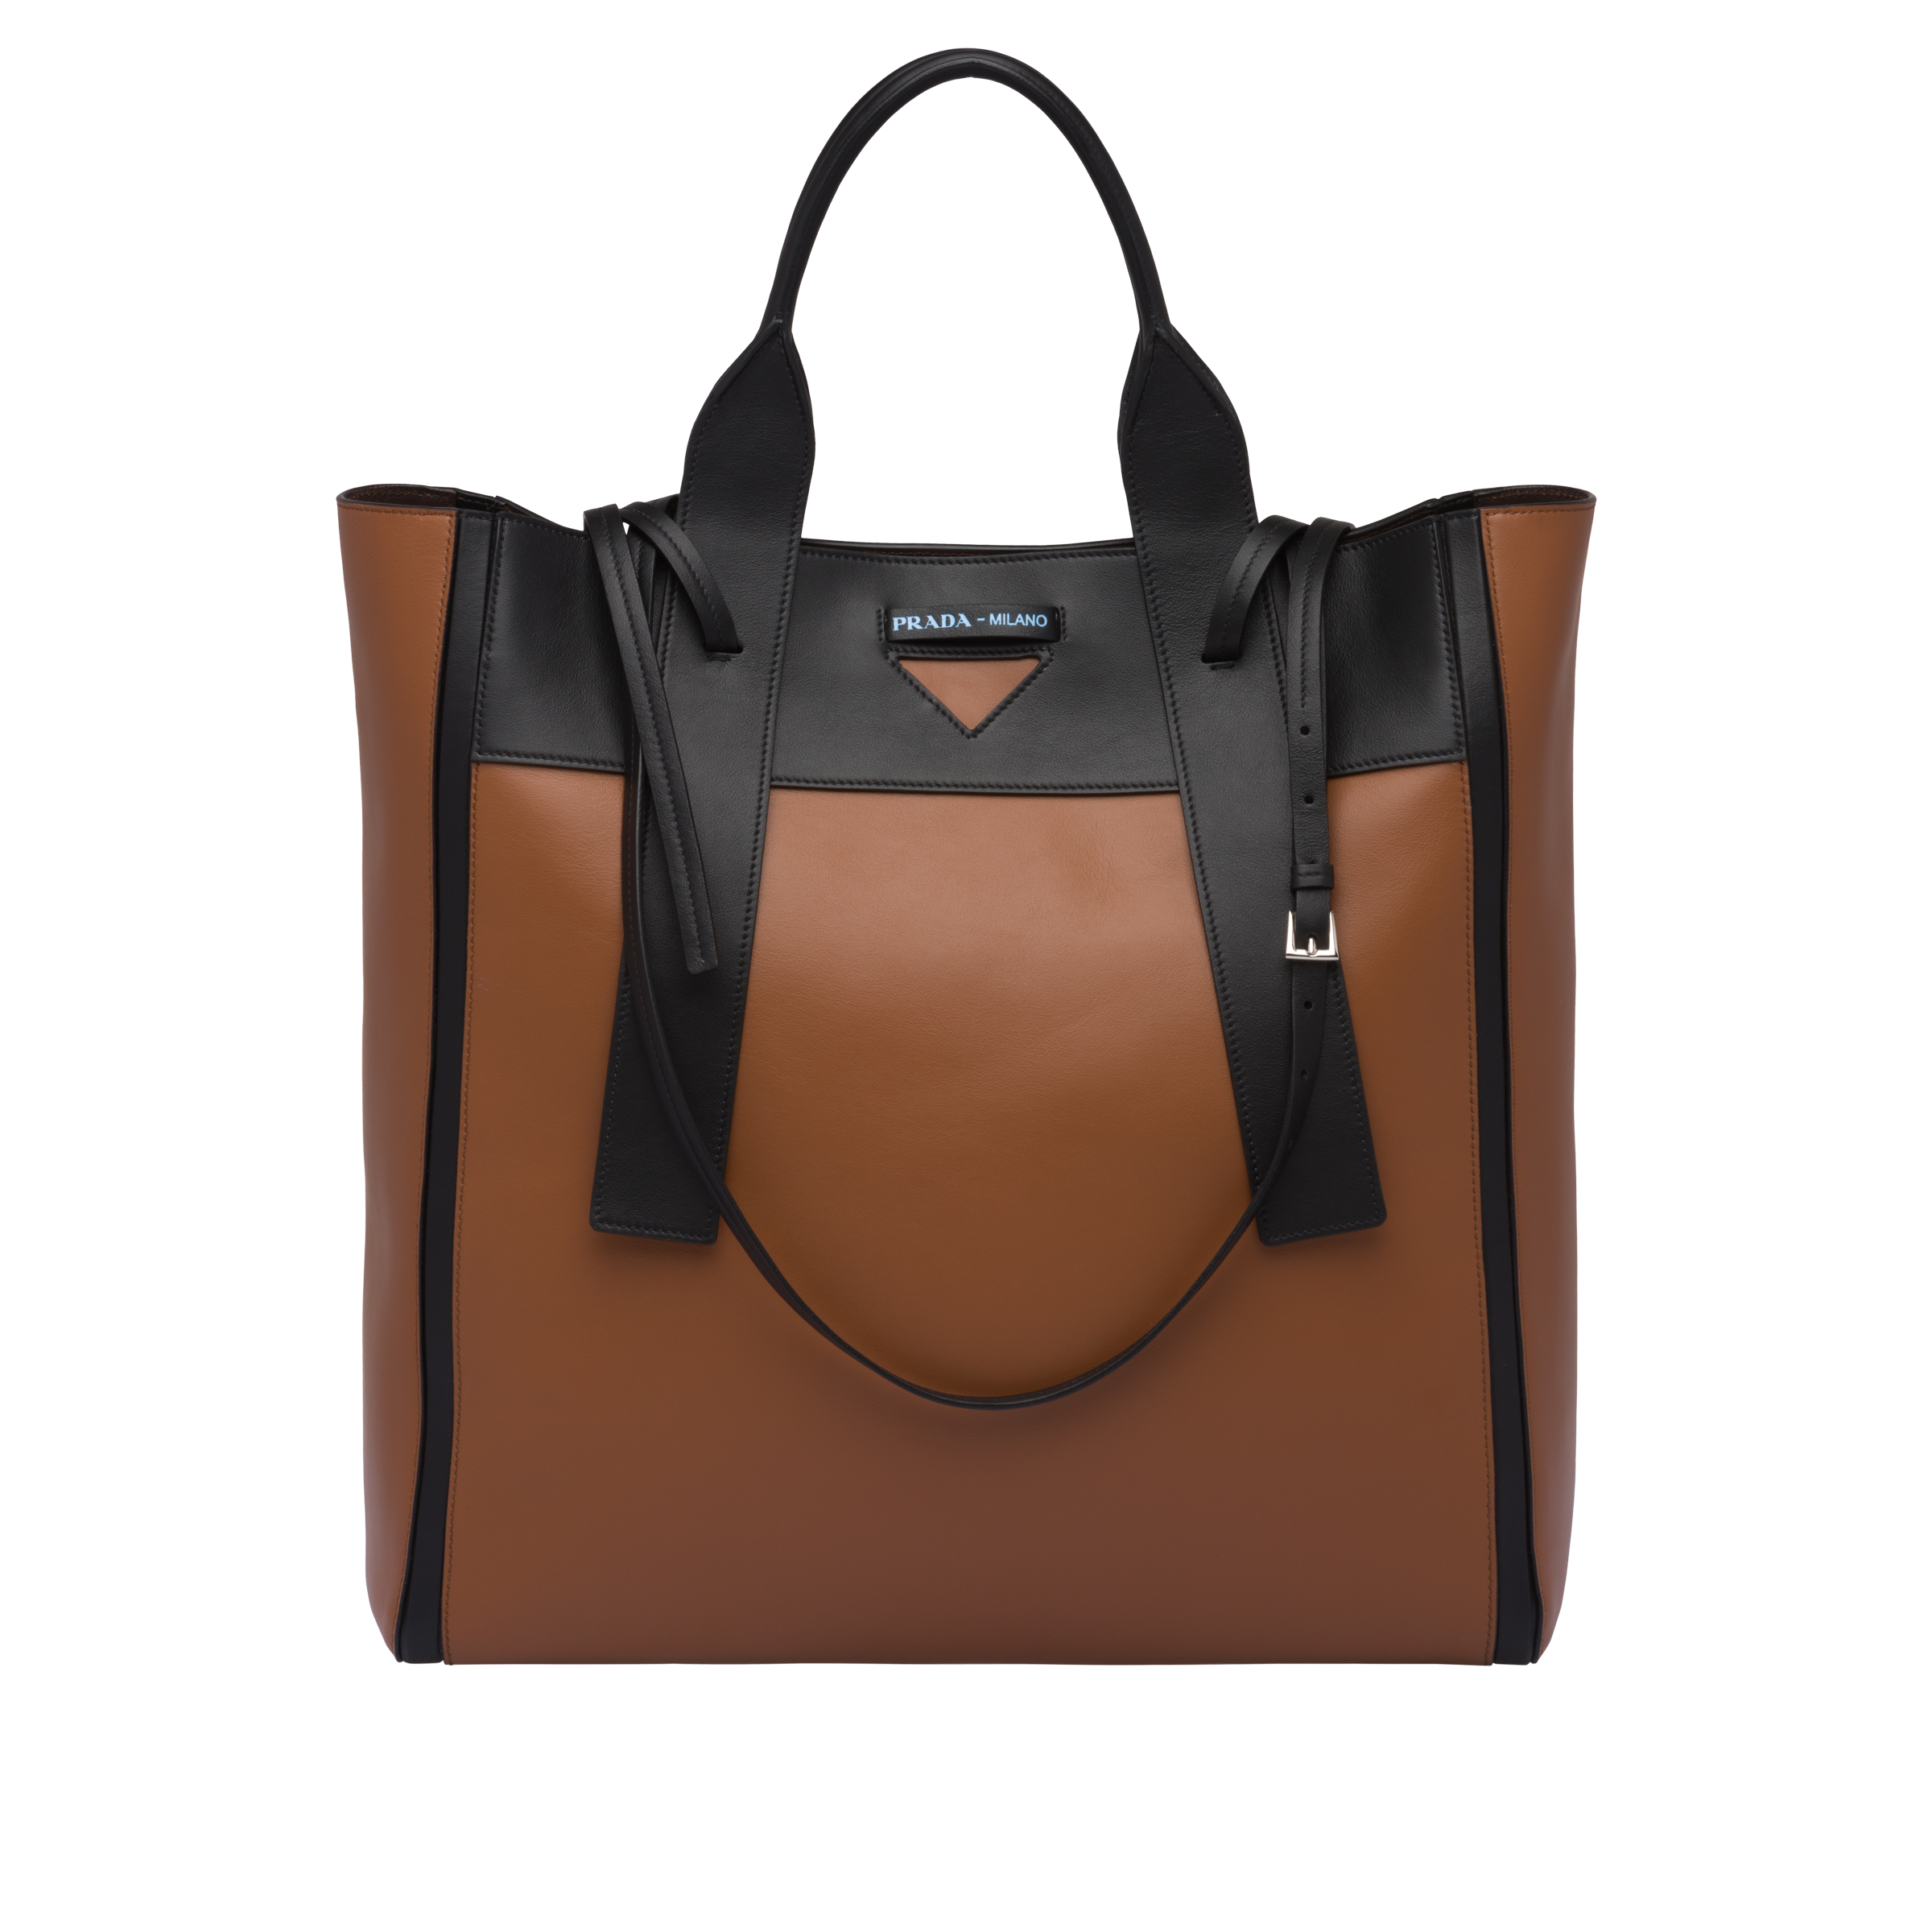 Transparent purses brown. Saffiano bags bgbjfrpvowhslfpng